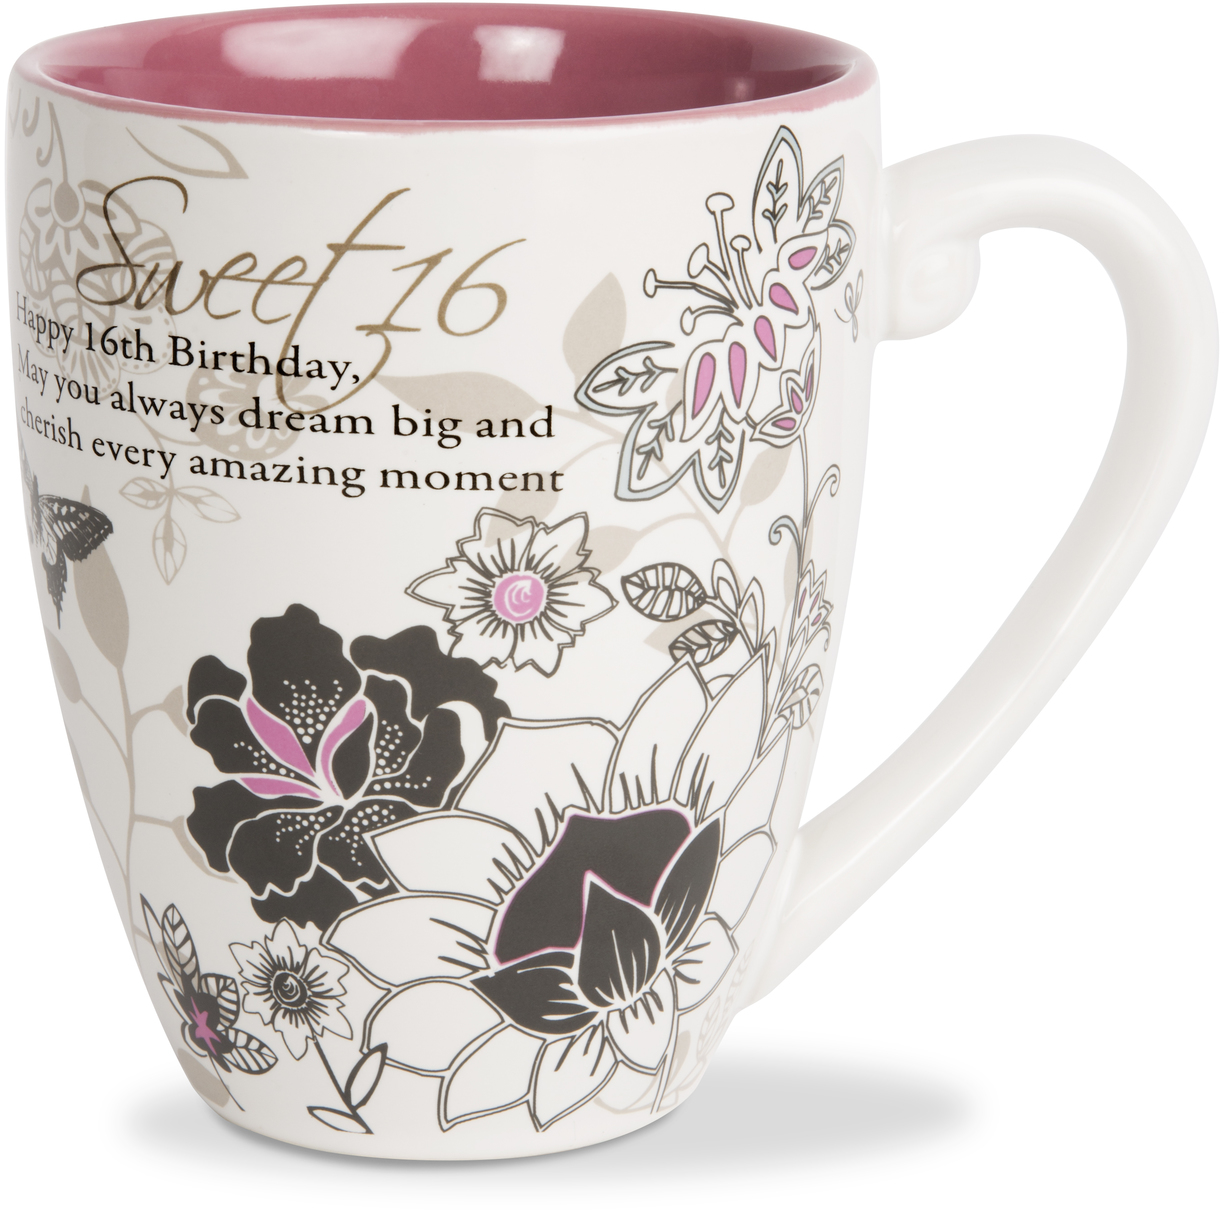 Sweet 16 20 Oz Cup Mark My Words Pavilion